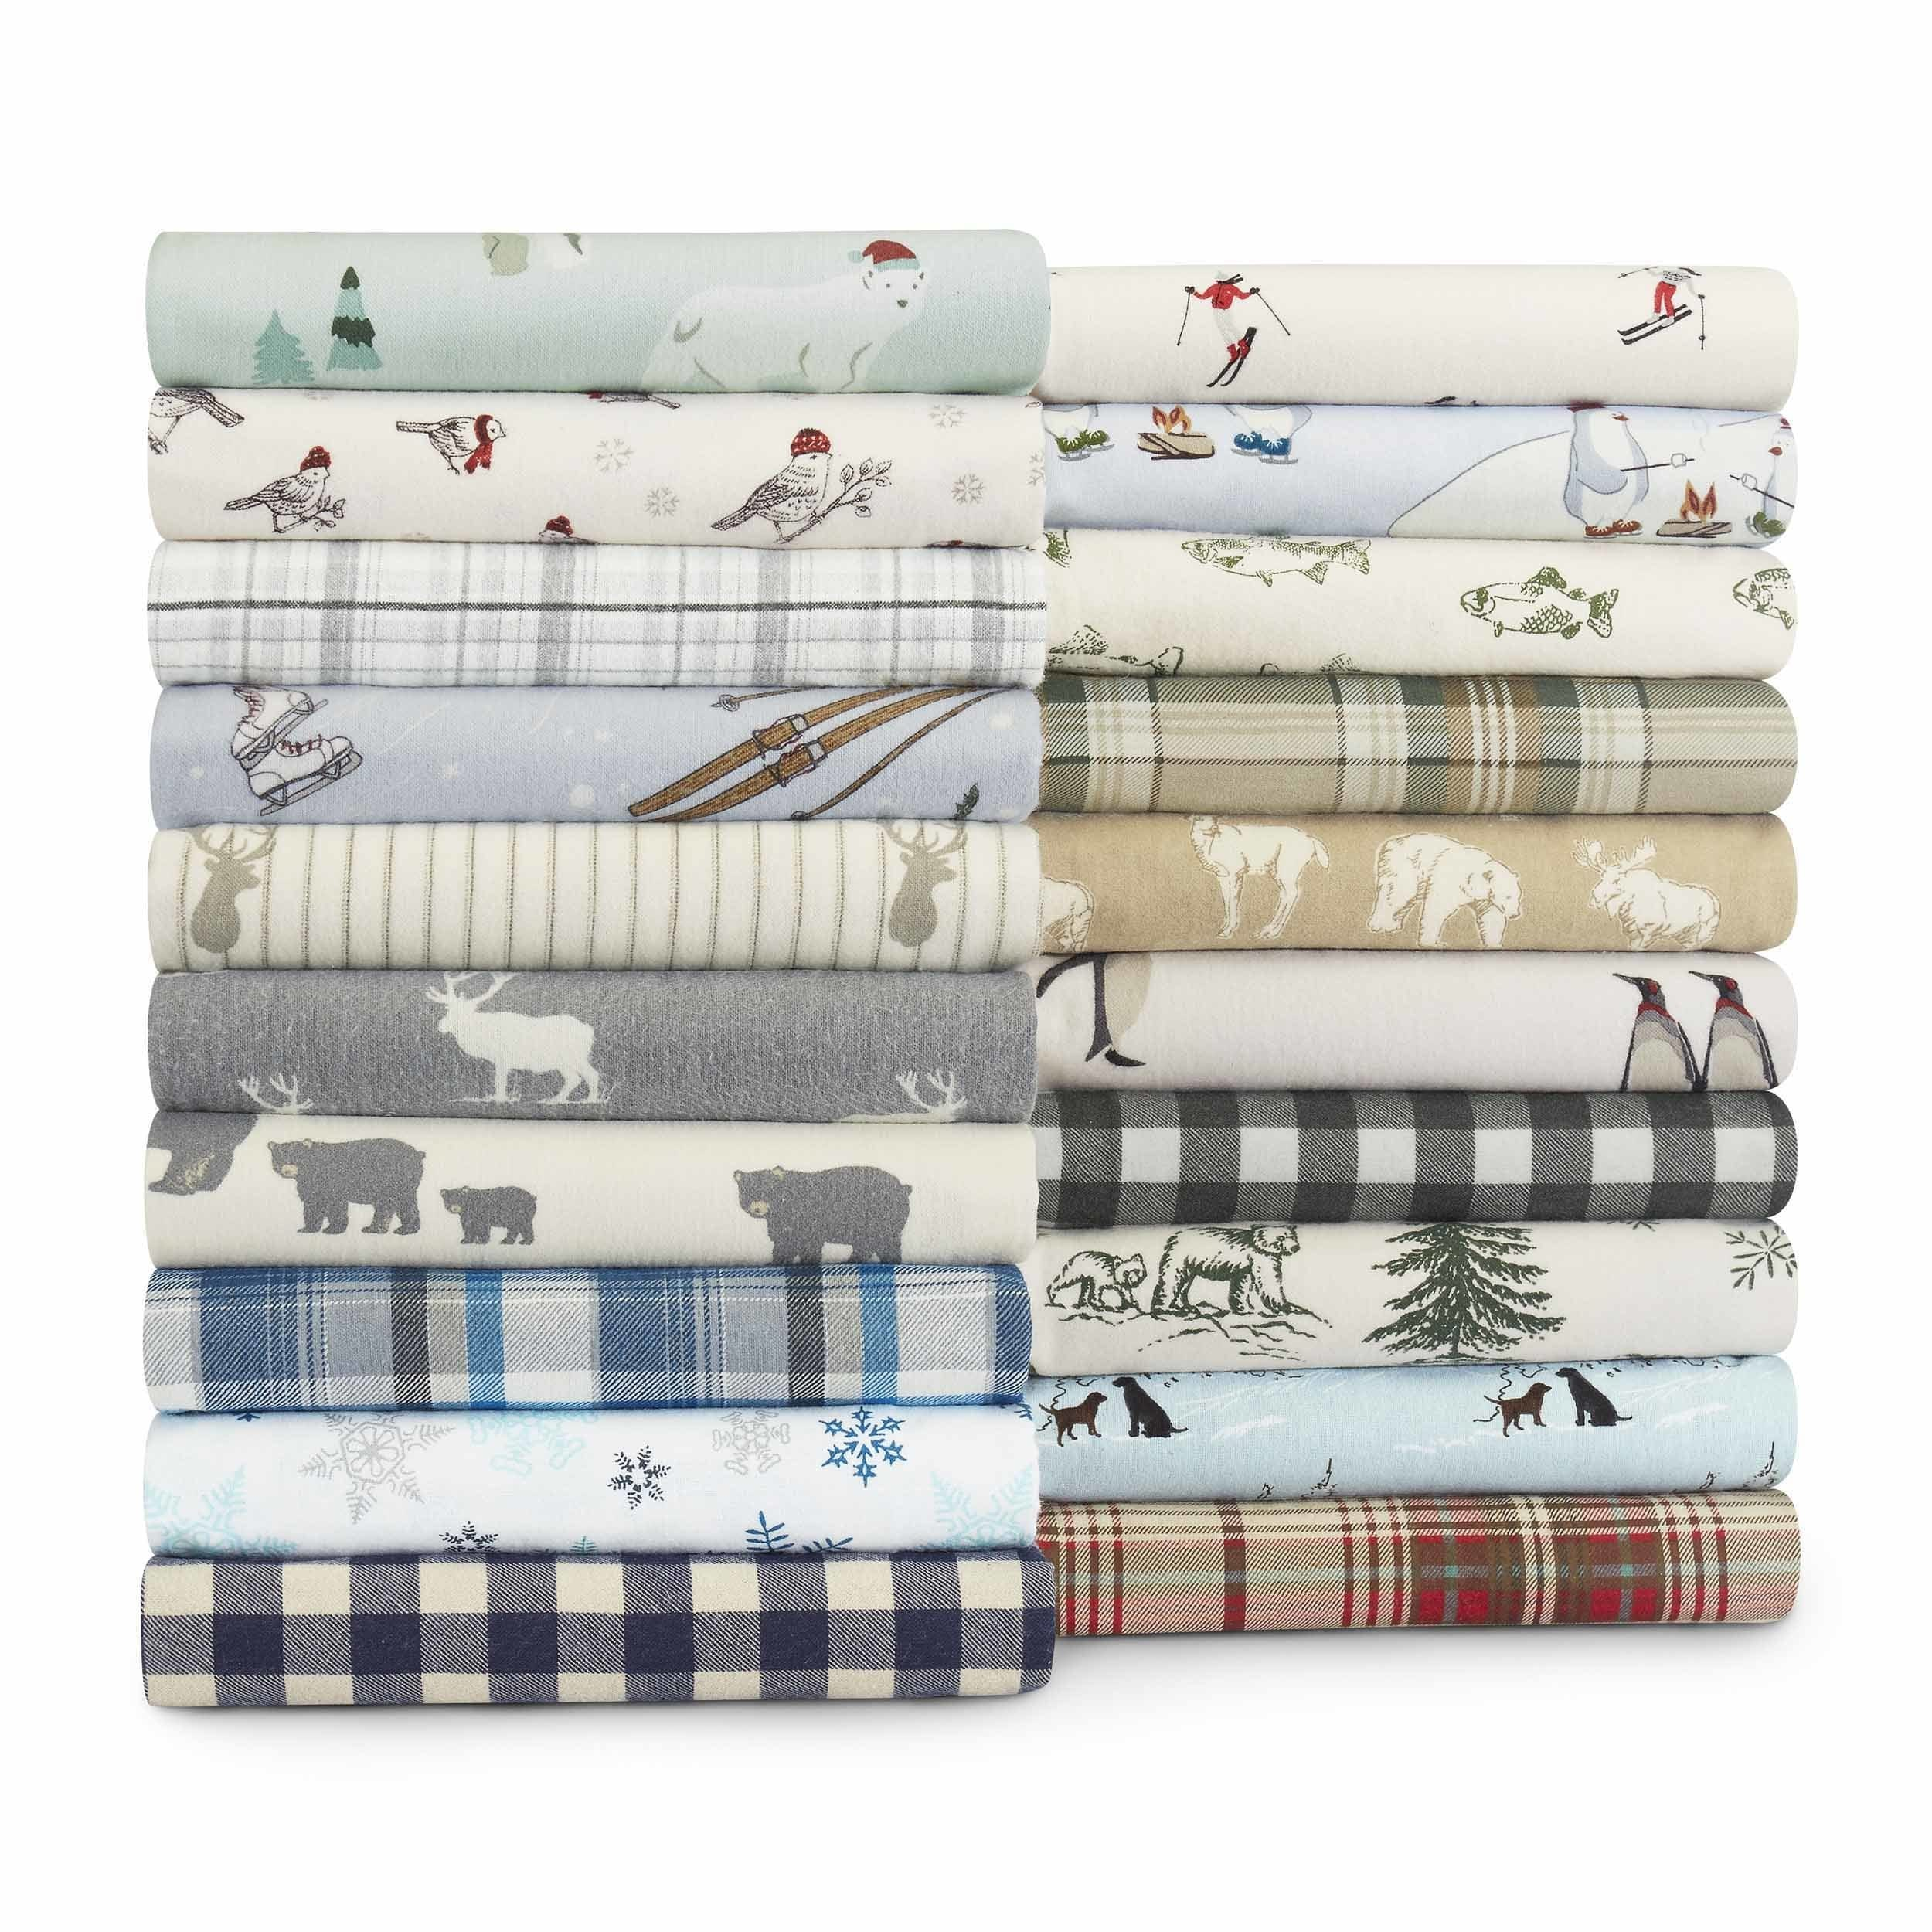 Eddie Bauer Cotton Flannel Sheet Set (As Is Item) (King -...